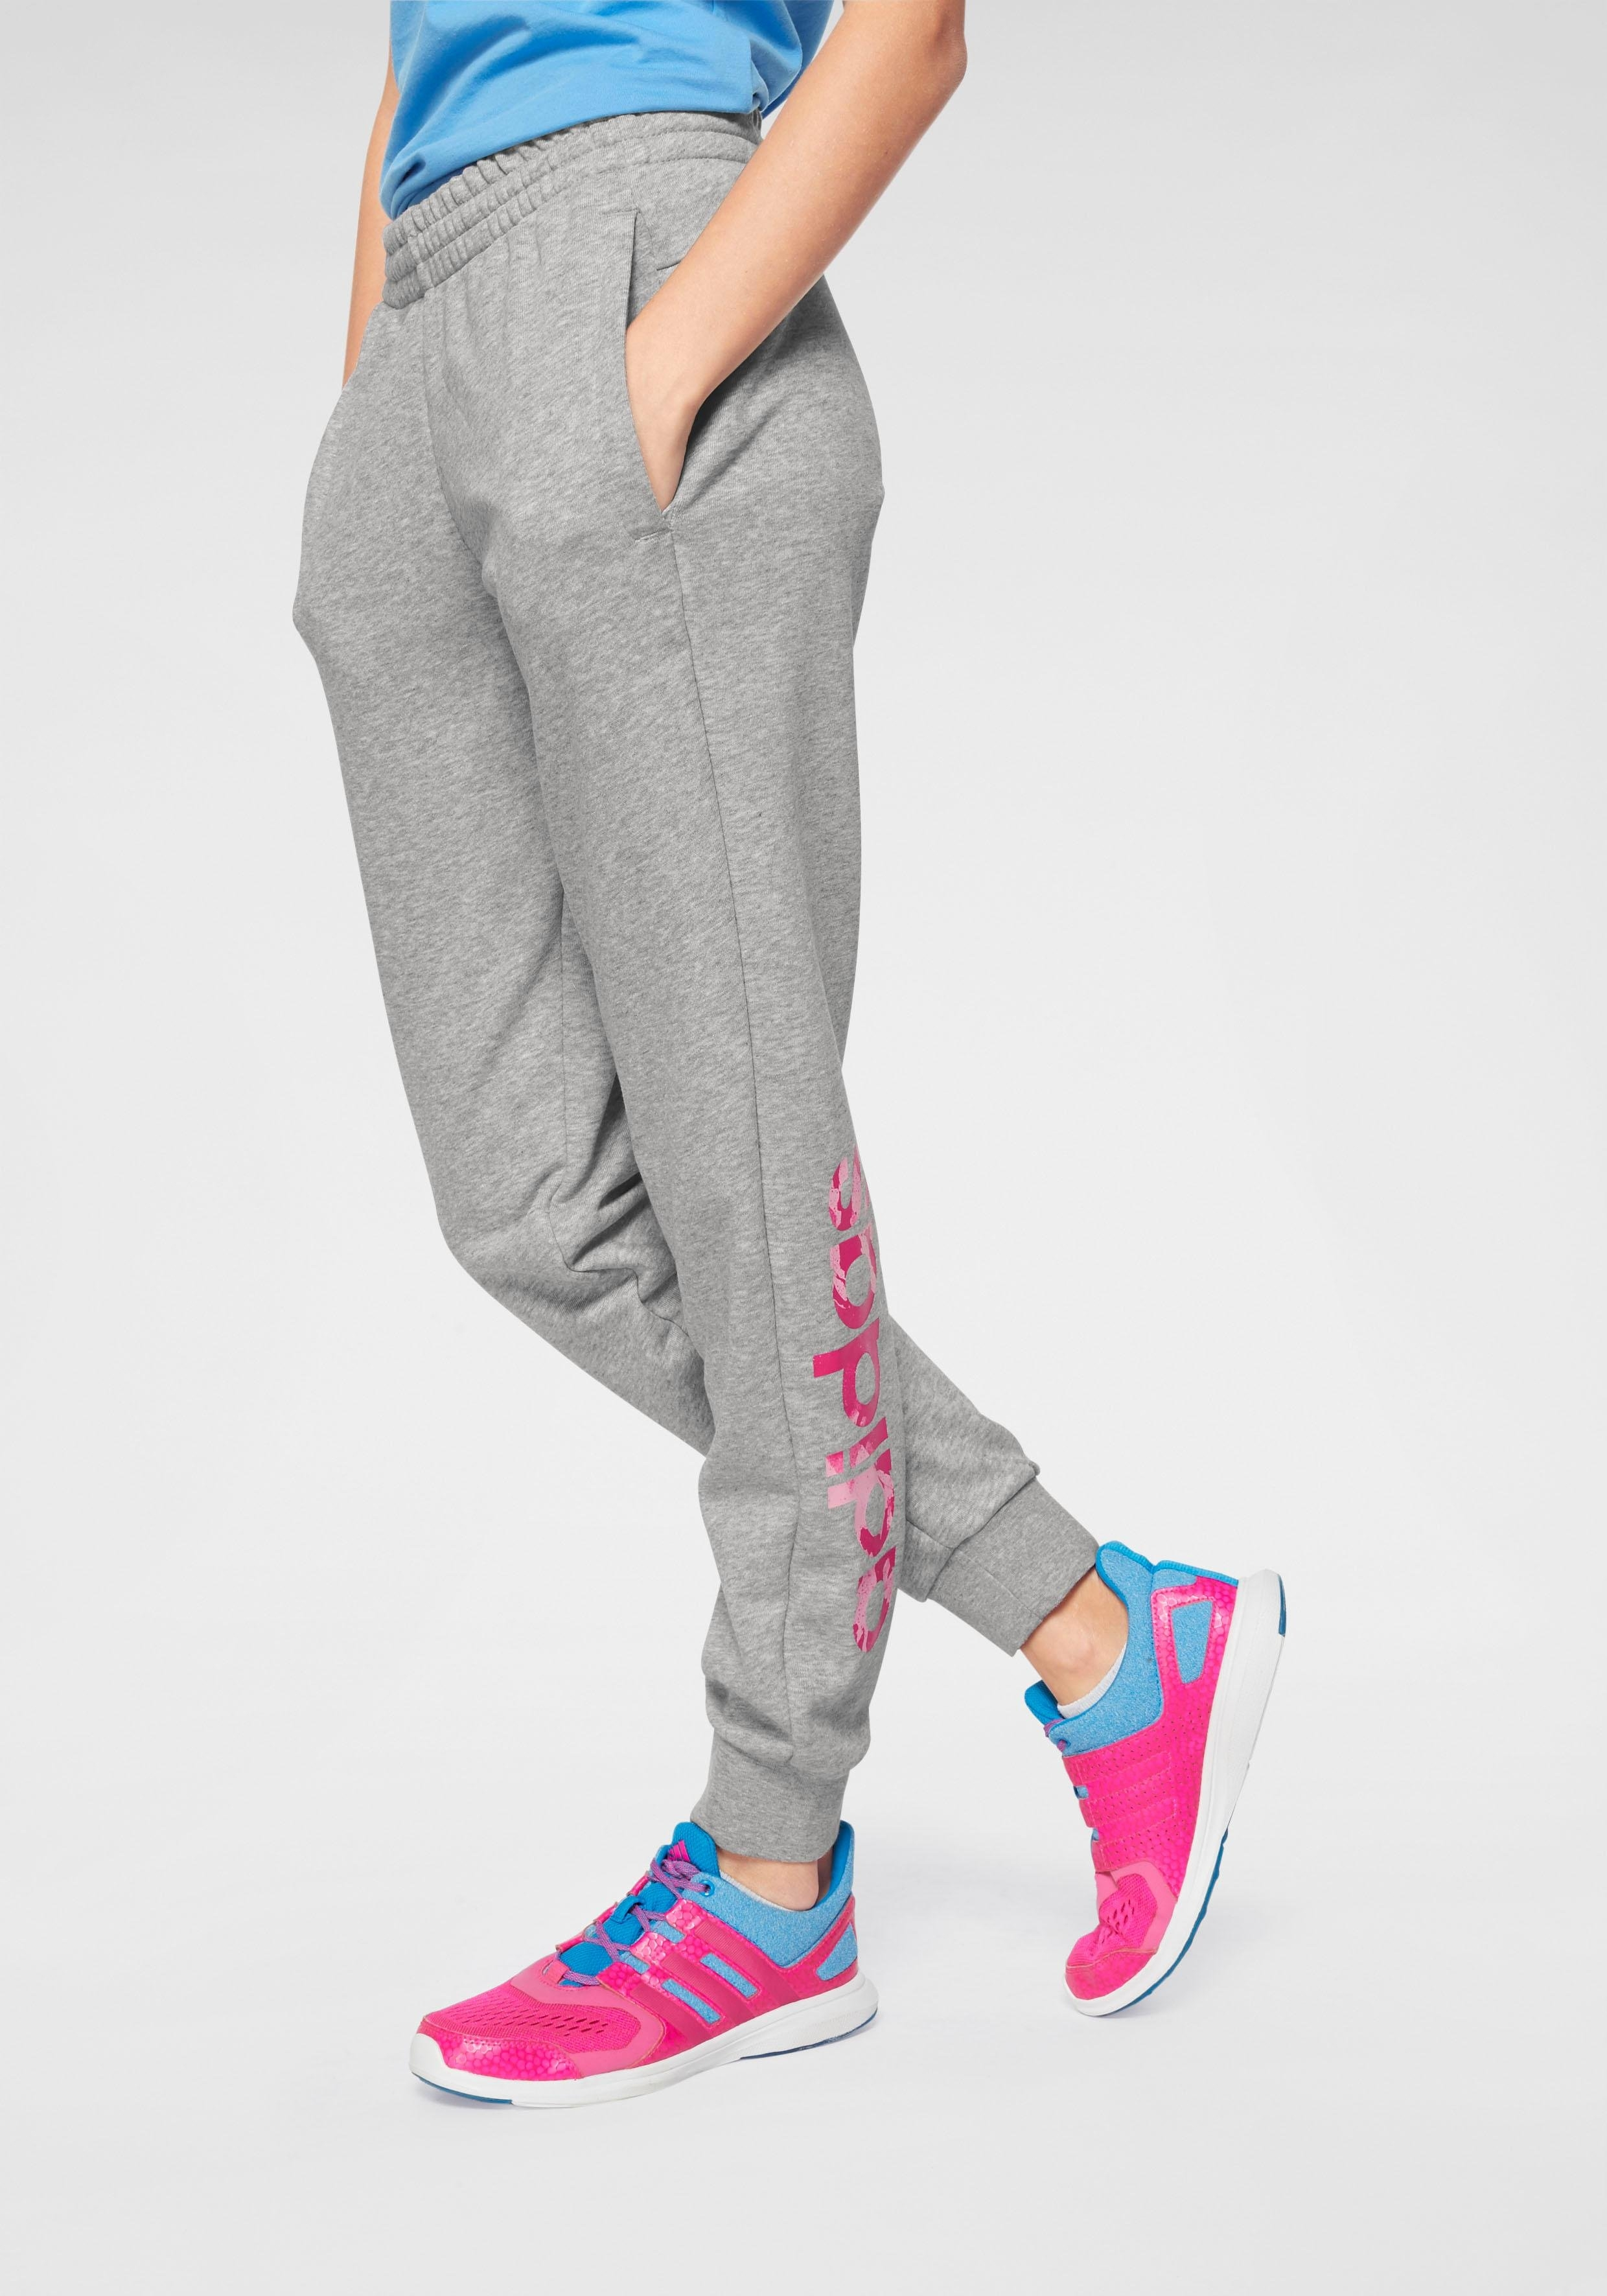 557327dba95 ... adidas Performance legging »YOUNG GIRLS MUST HAVE BATCH OF SPORT  TIGHT«, adidas legging »E LINEAR TIGHT«